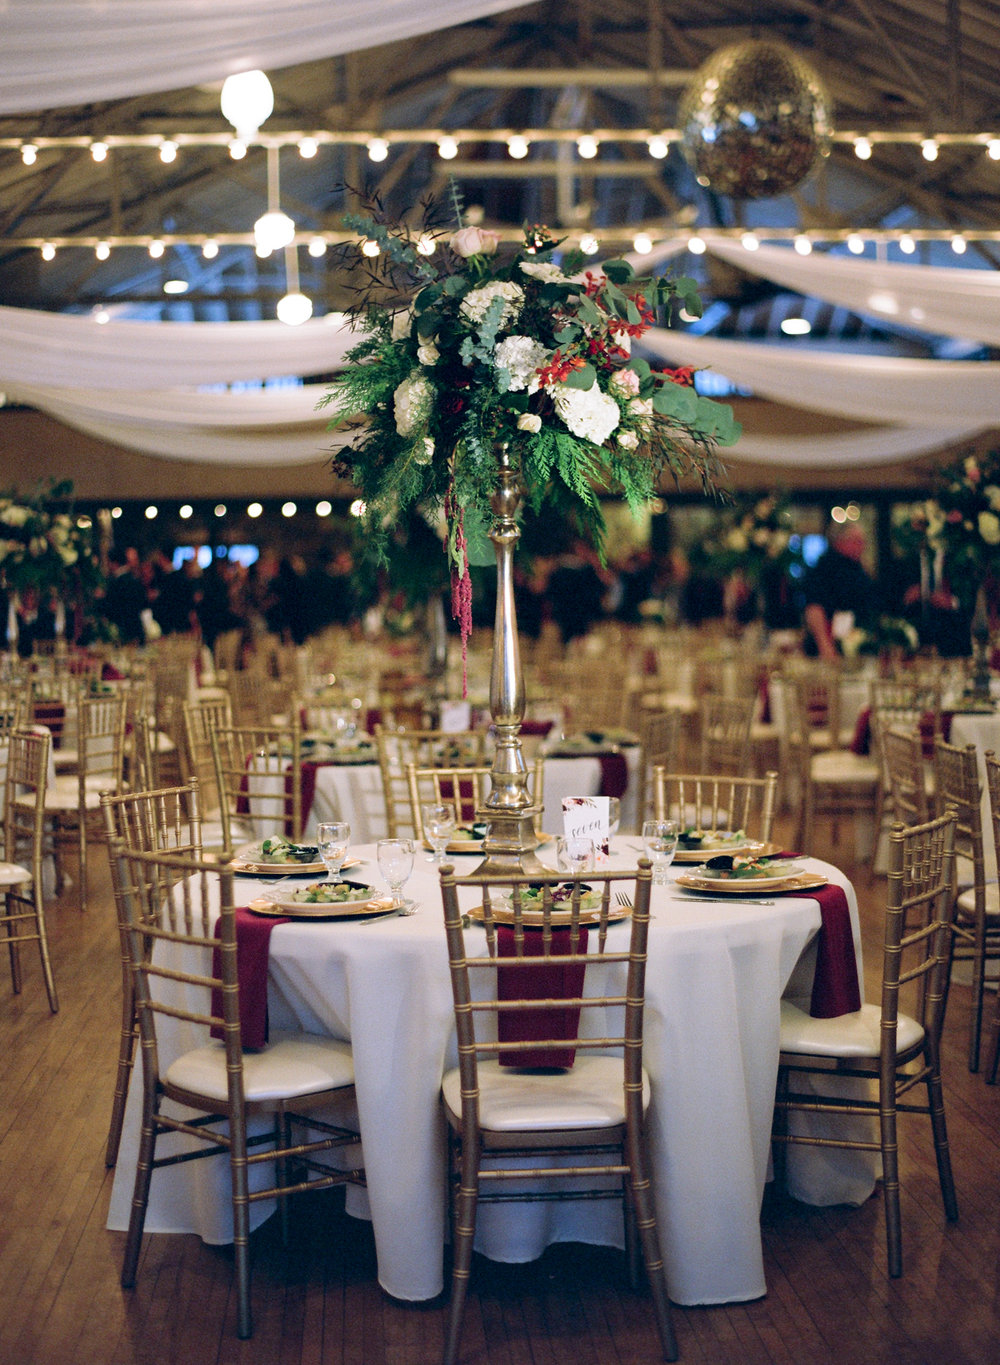 Burgundy and gold decor at Rothschild Pavilion winter wedding reception